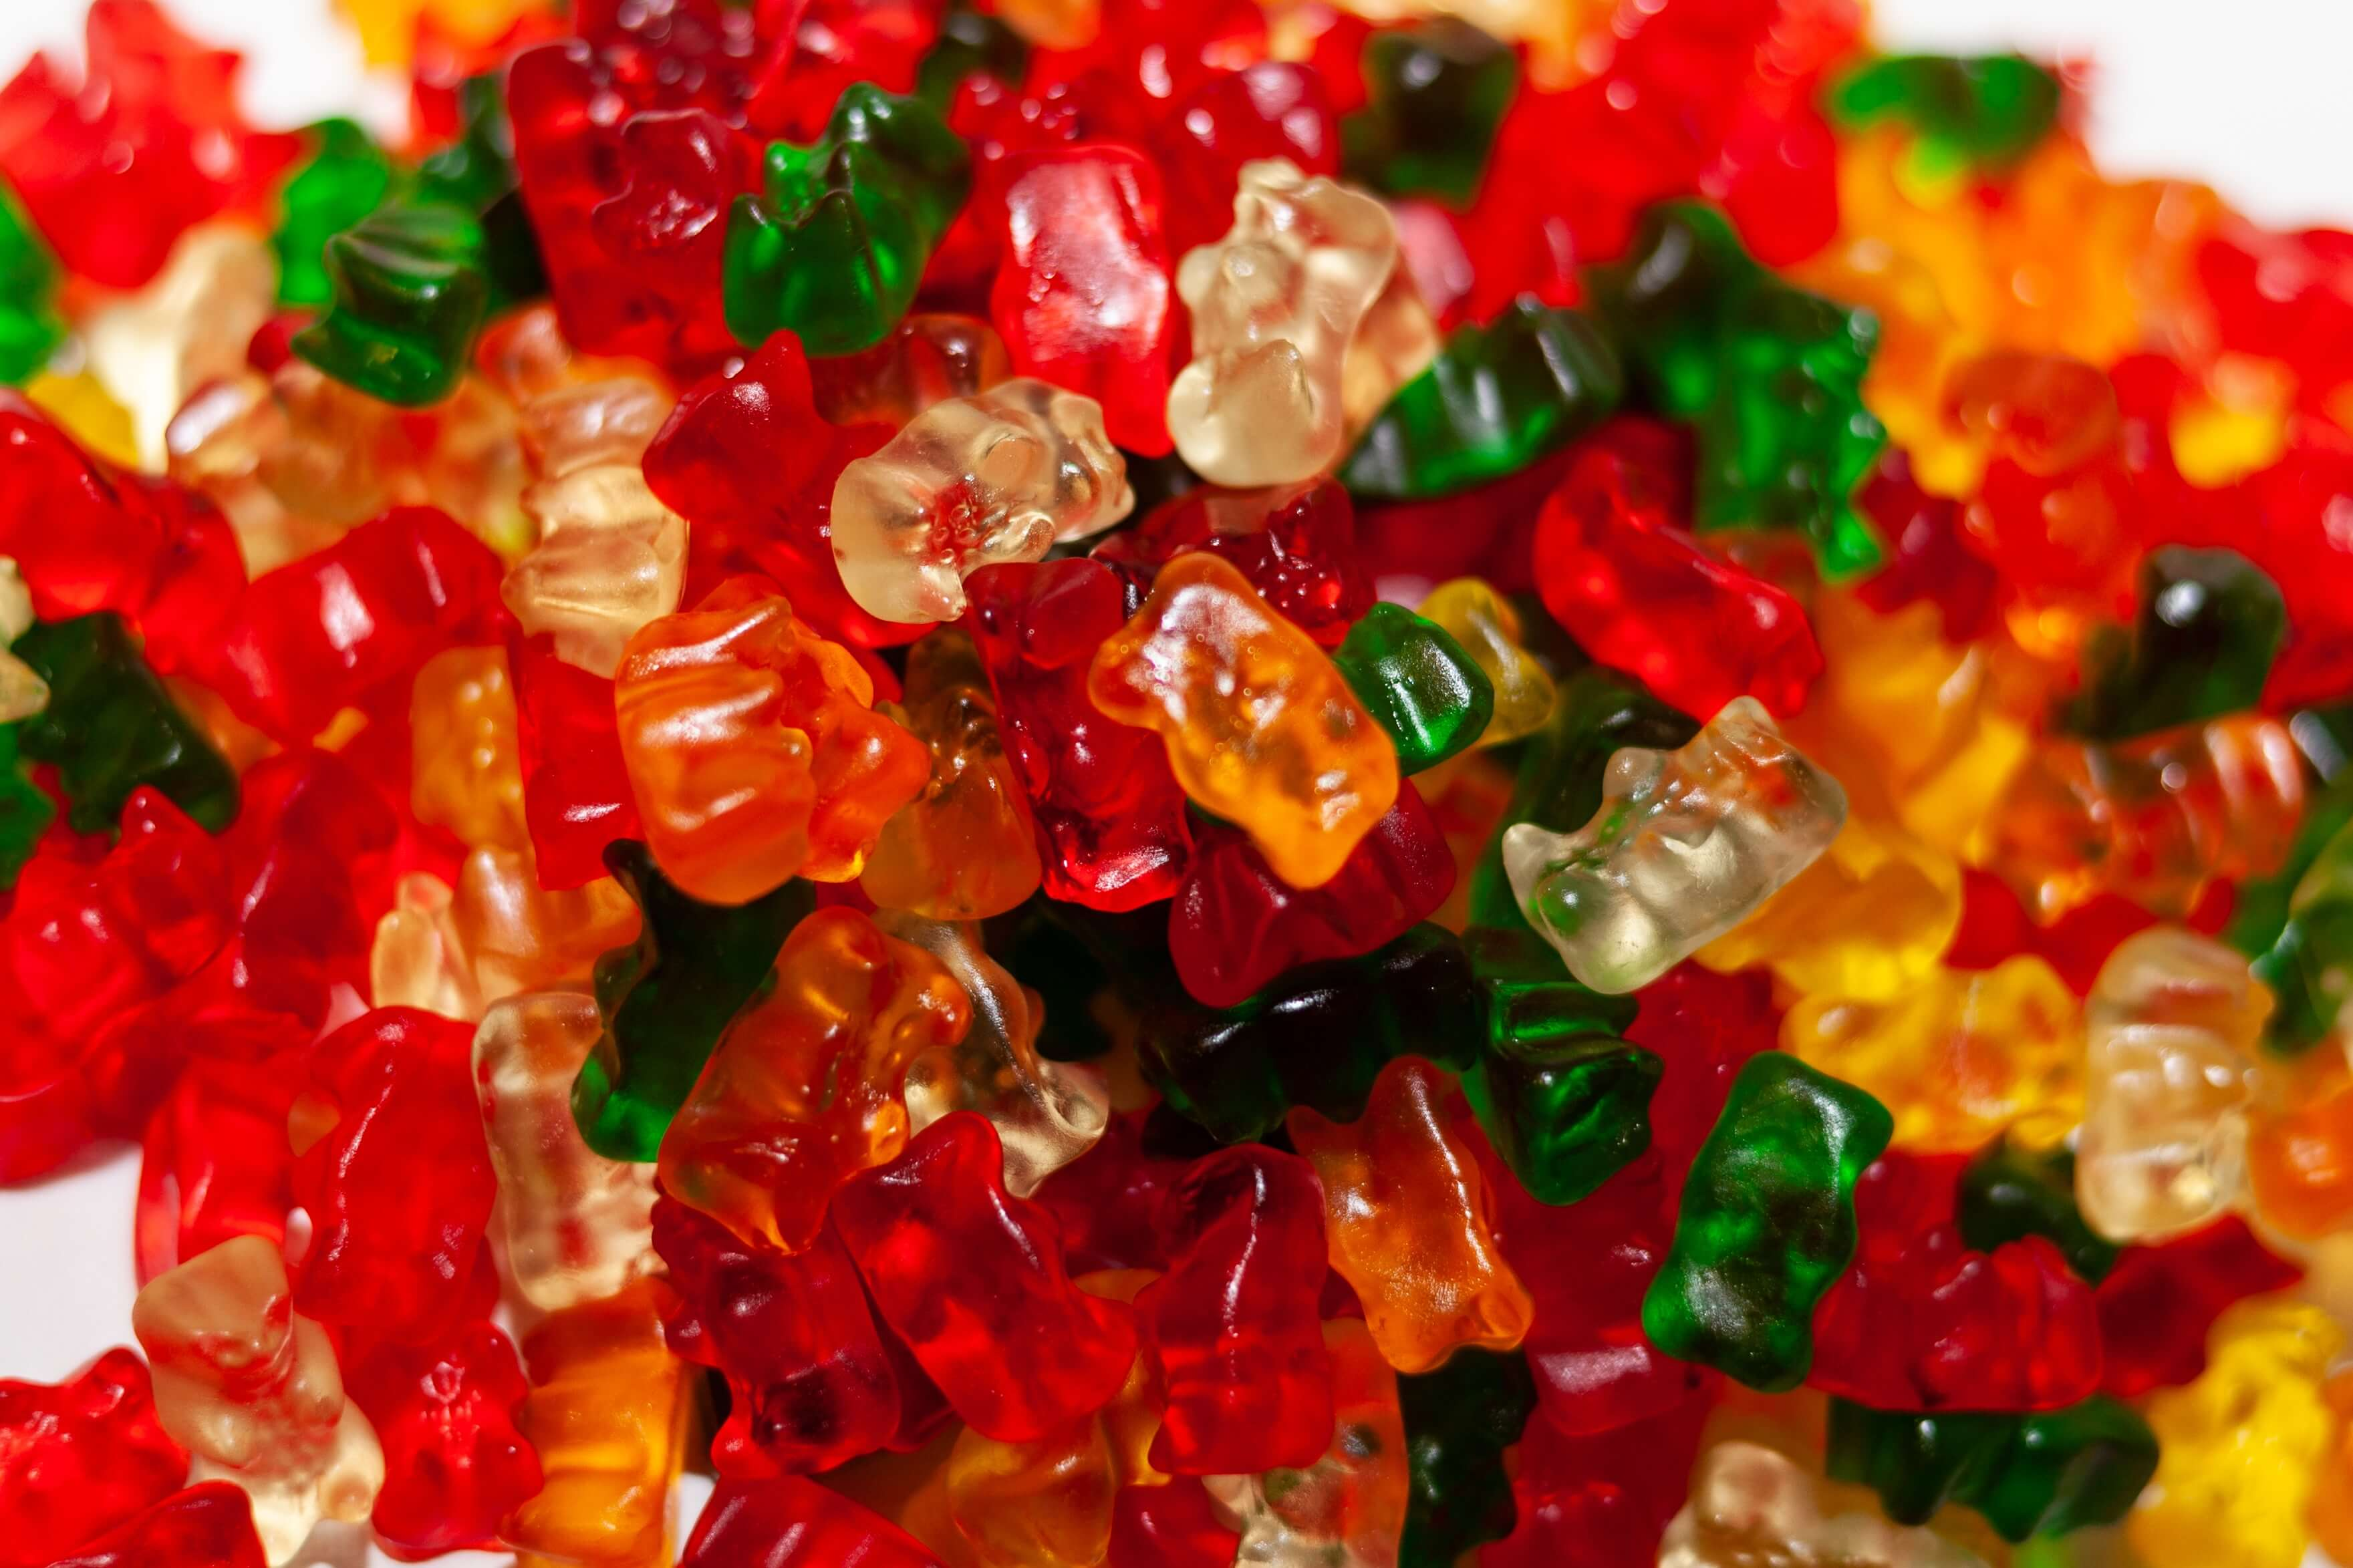 How To Make Cannabis Gummies Easily And Quickly